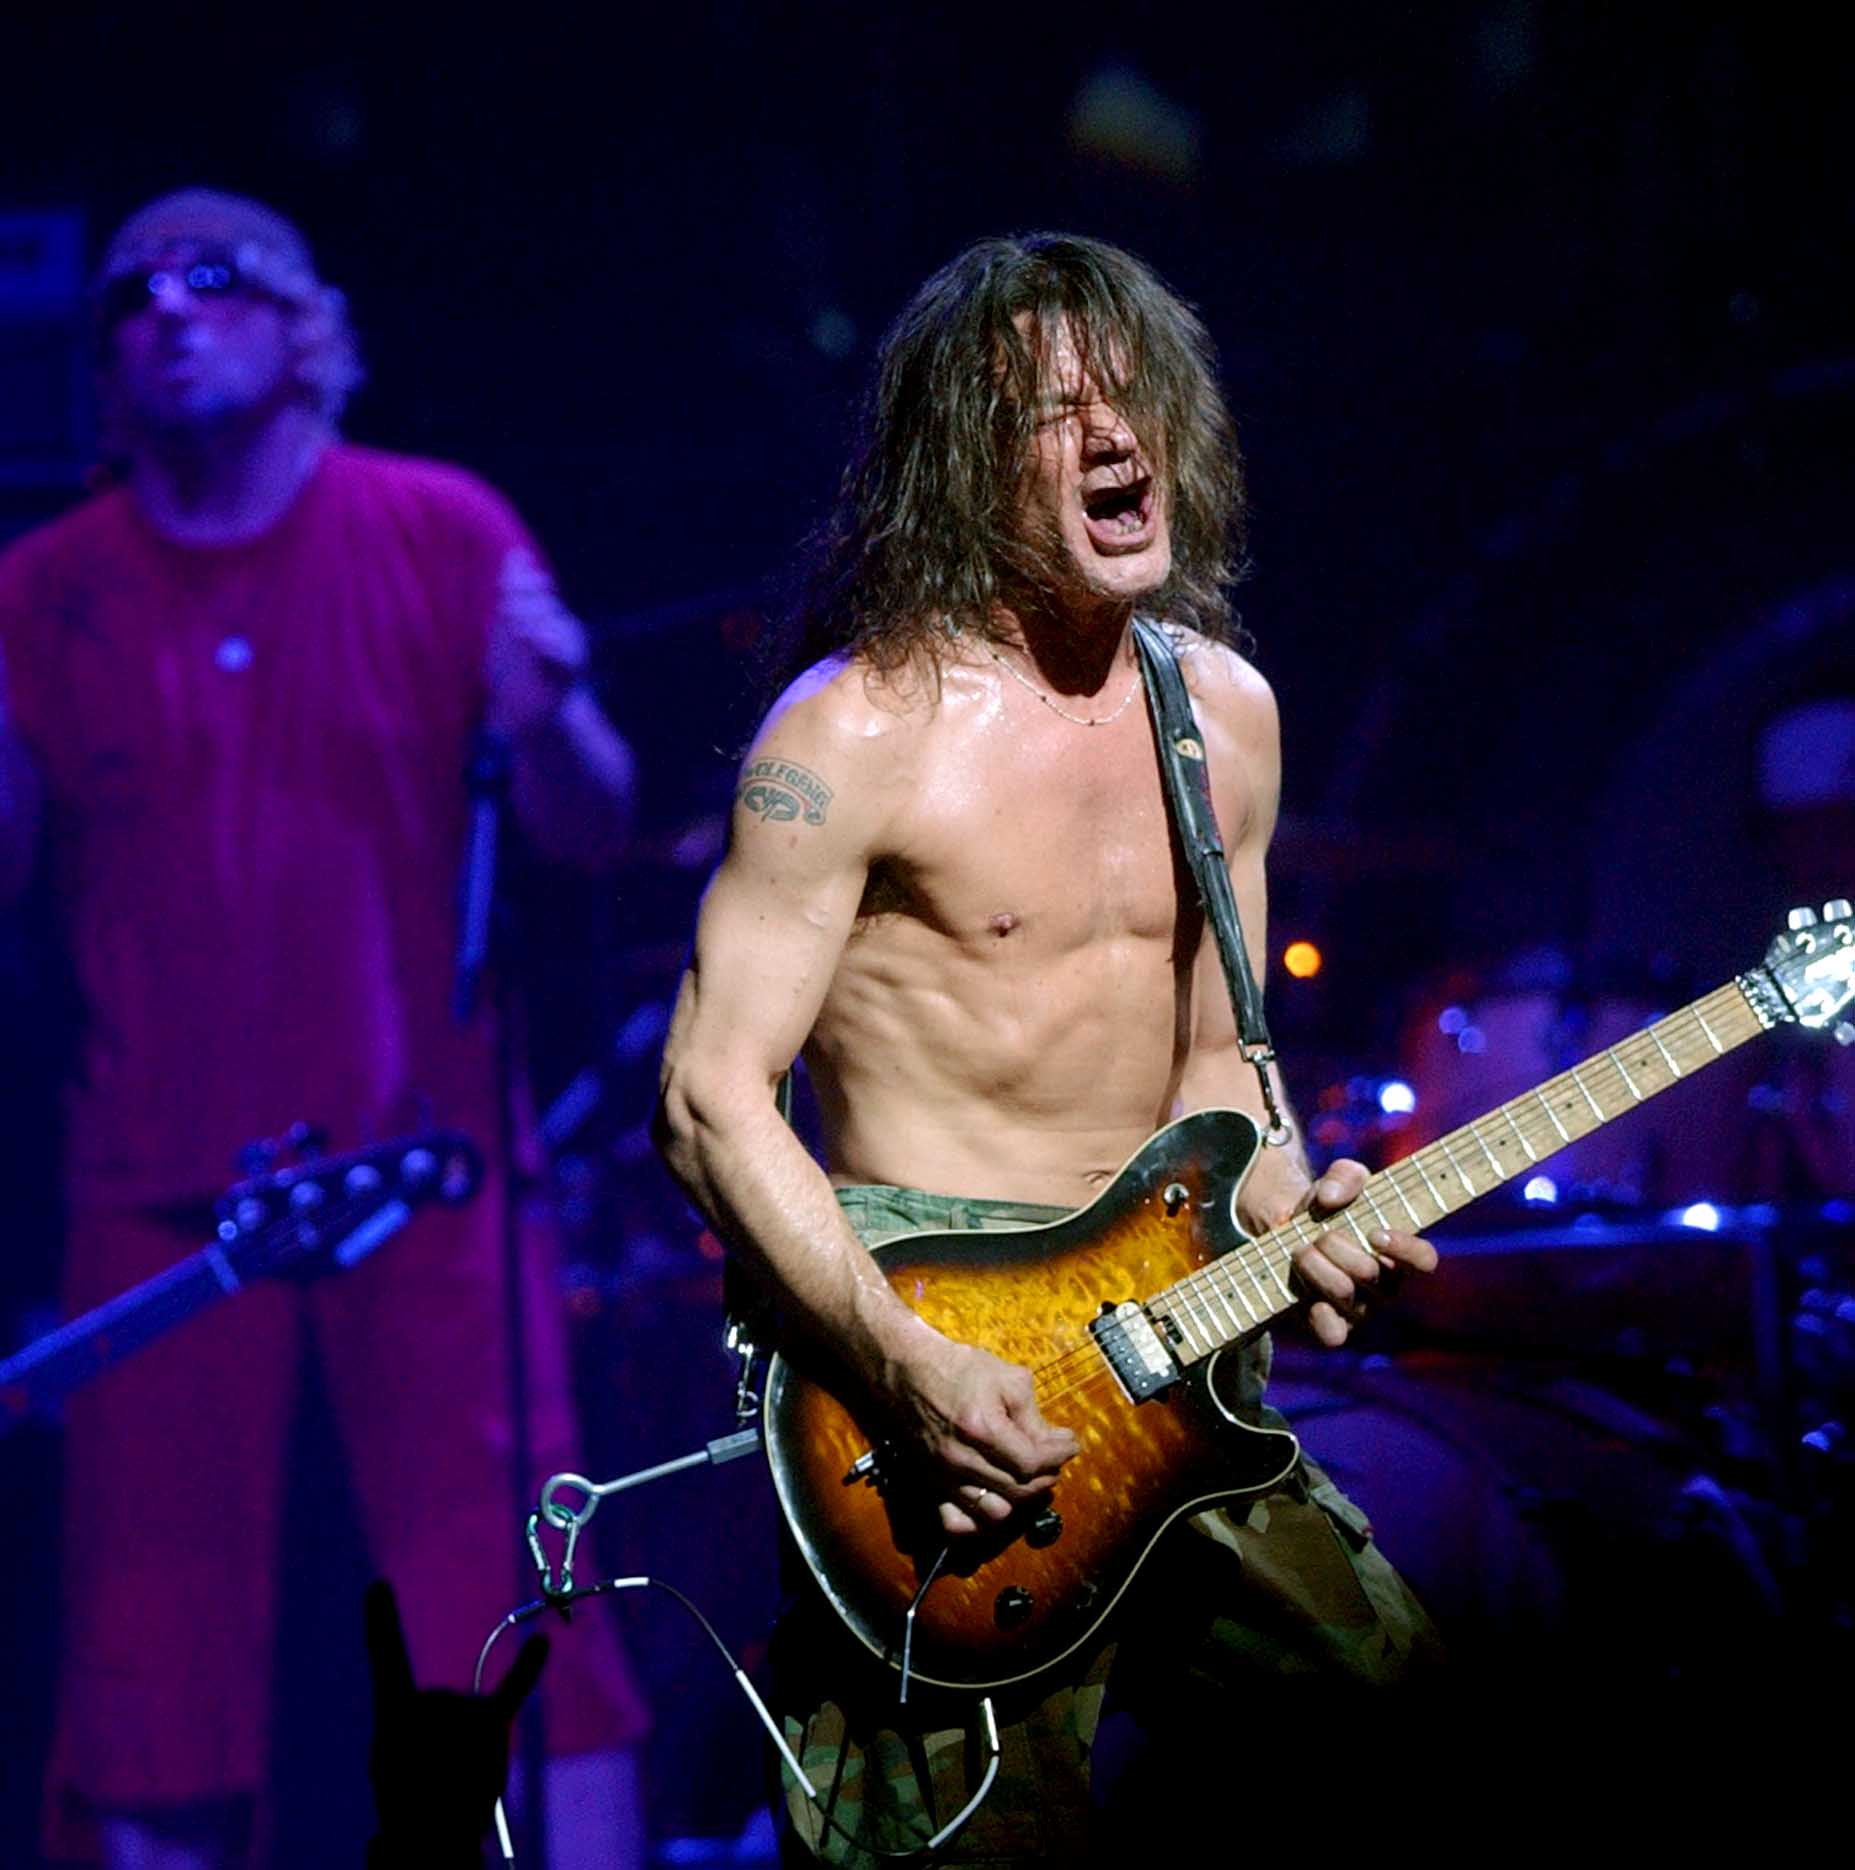 Eddie Van Halen performs with his band, Van Halen at the Delta Center, Aug. 3, 2004 in Salt Lake City Utah.